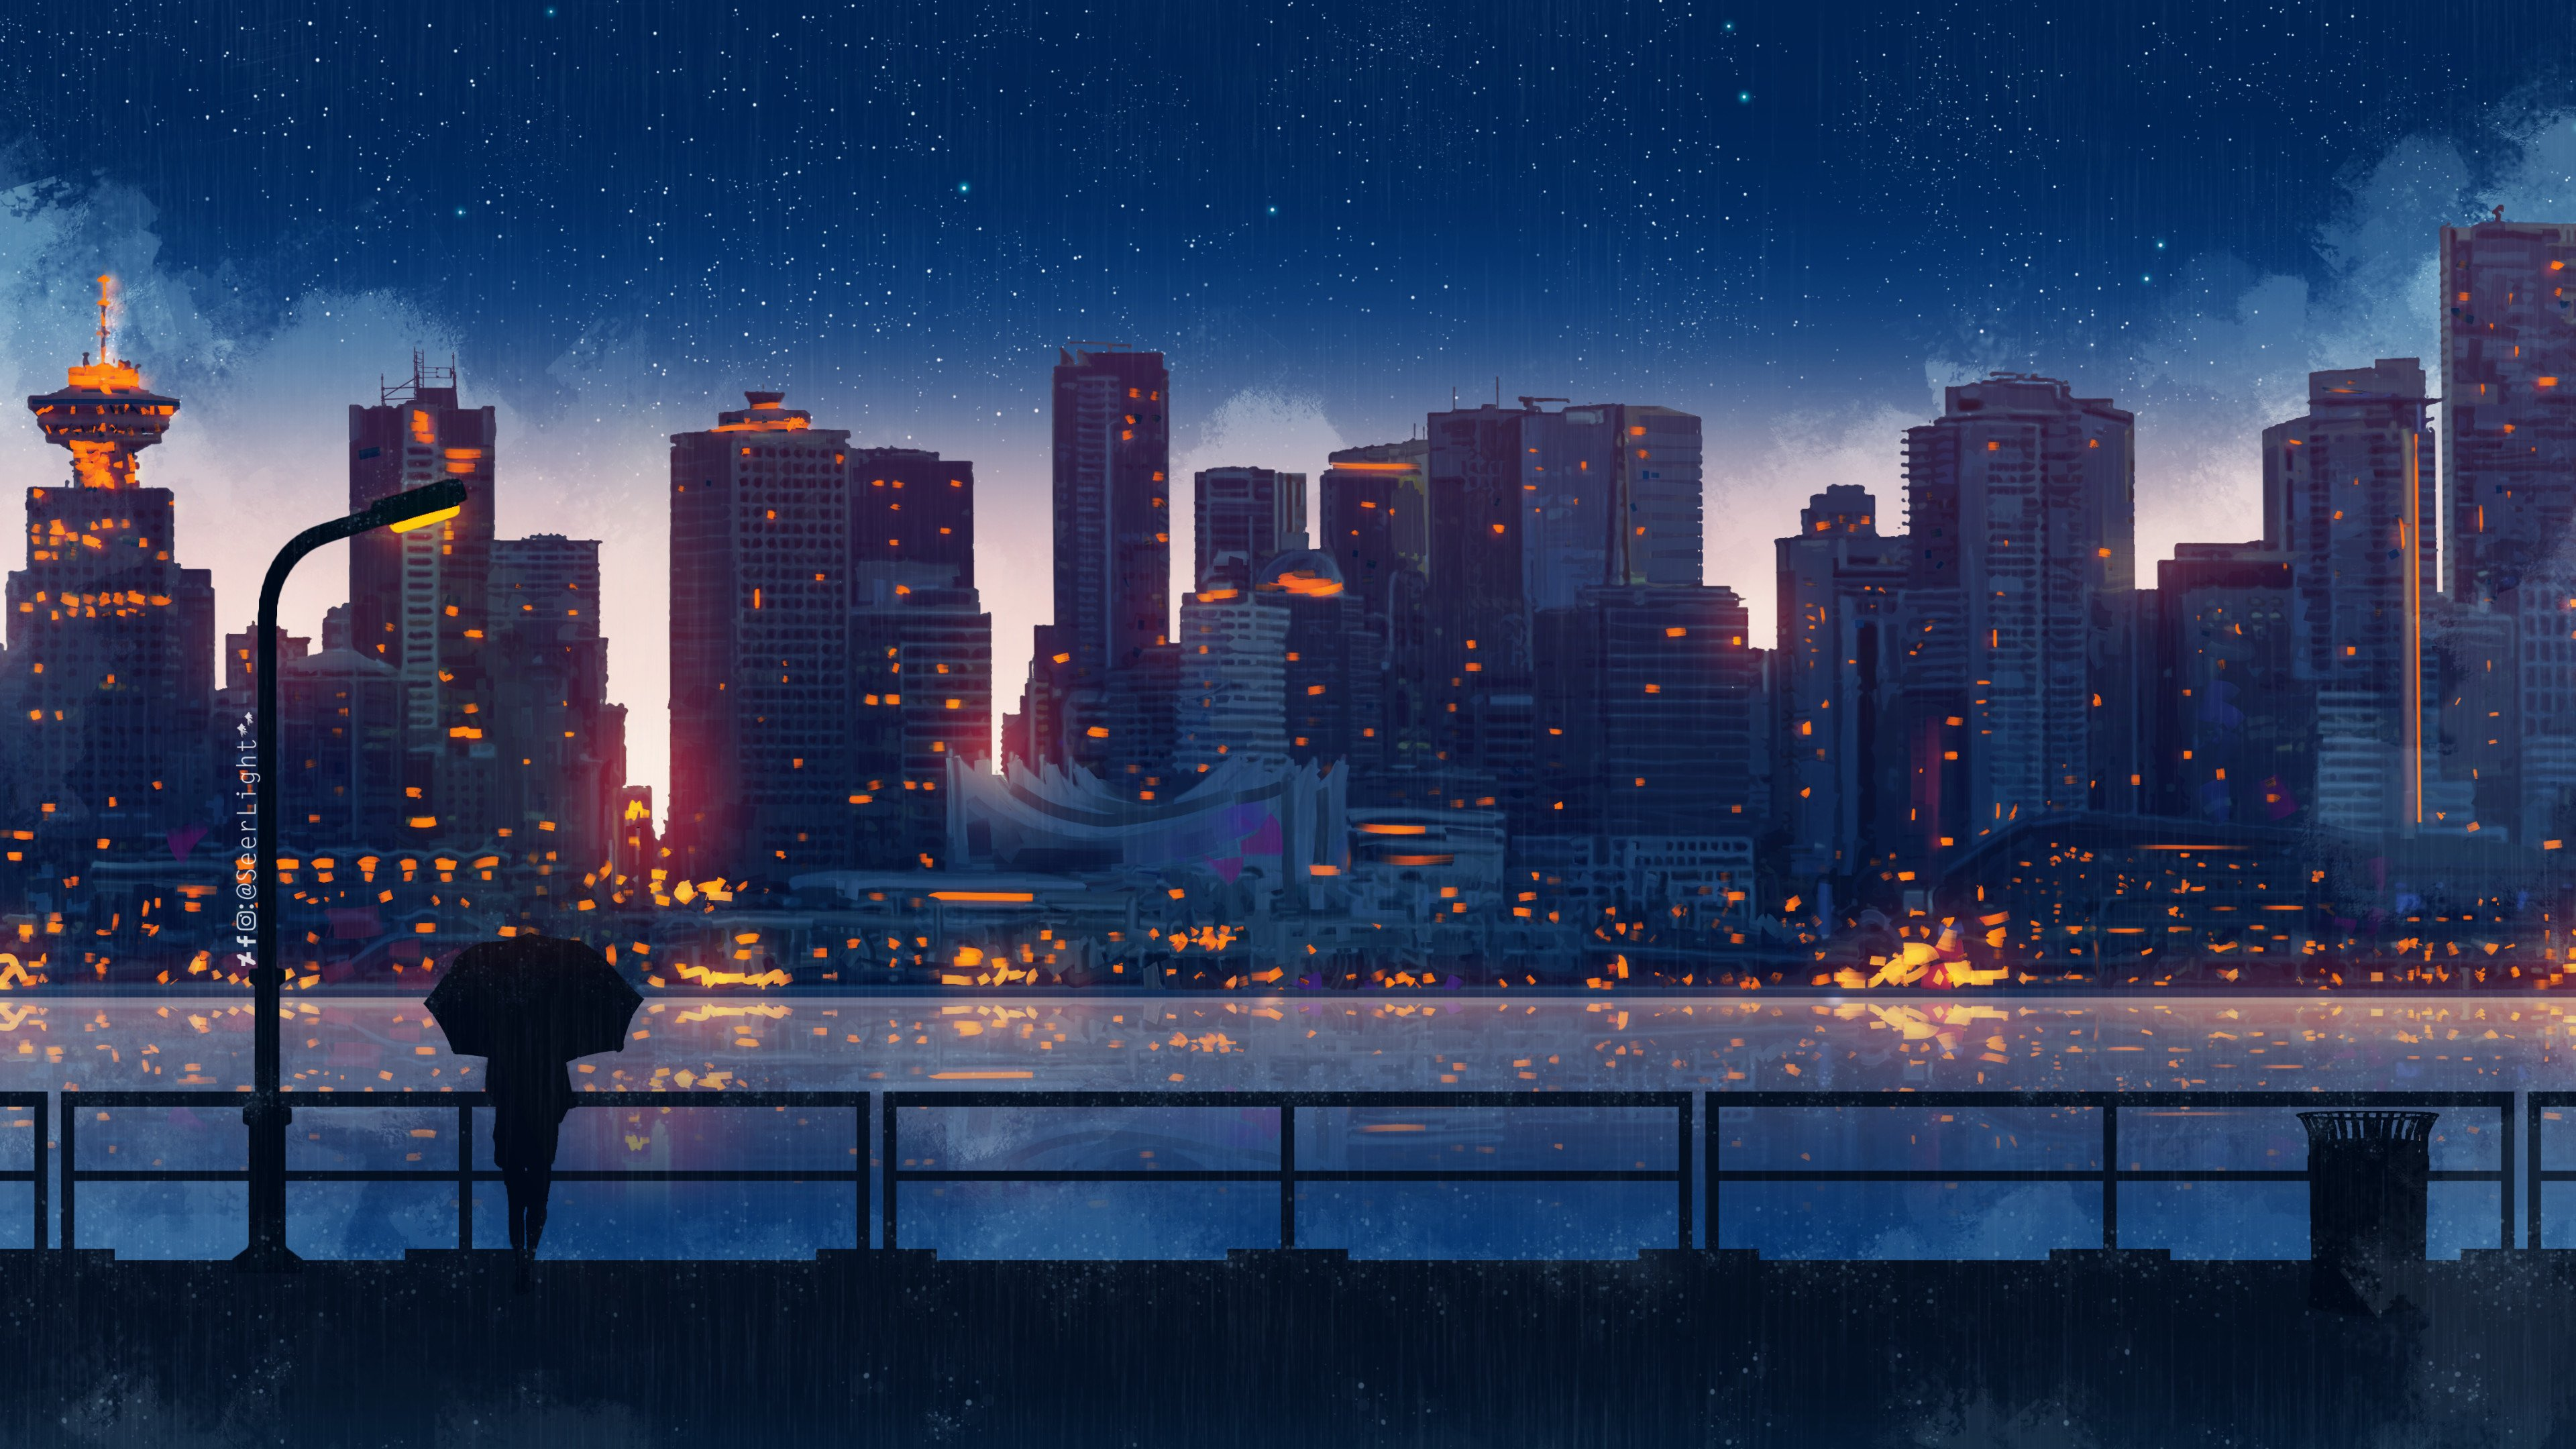 4k Anime City Night Wallpapers - Wallpaper Cave